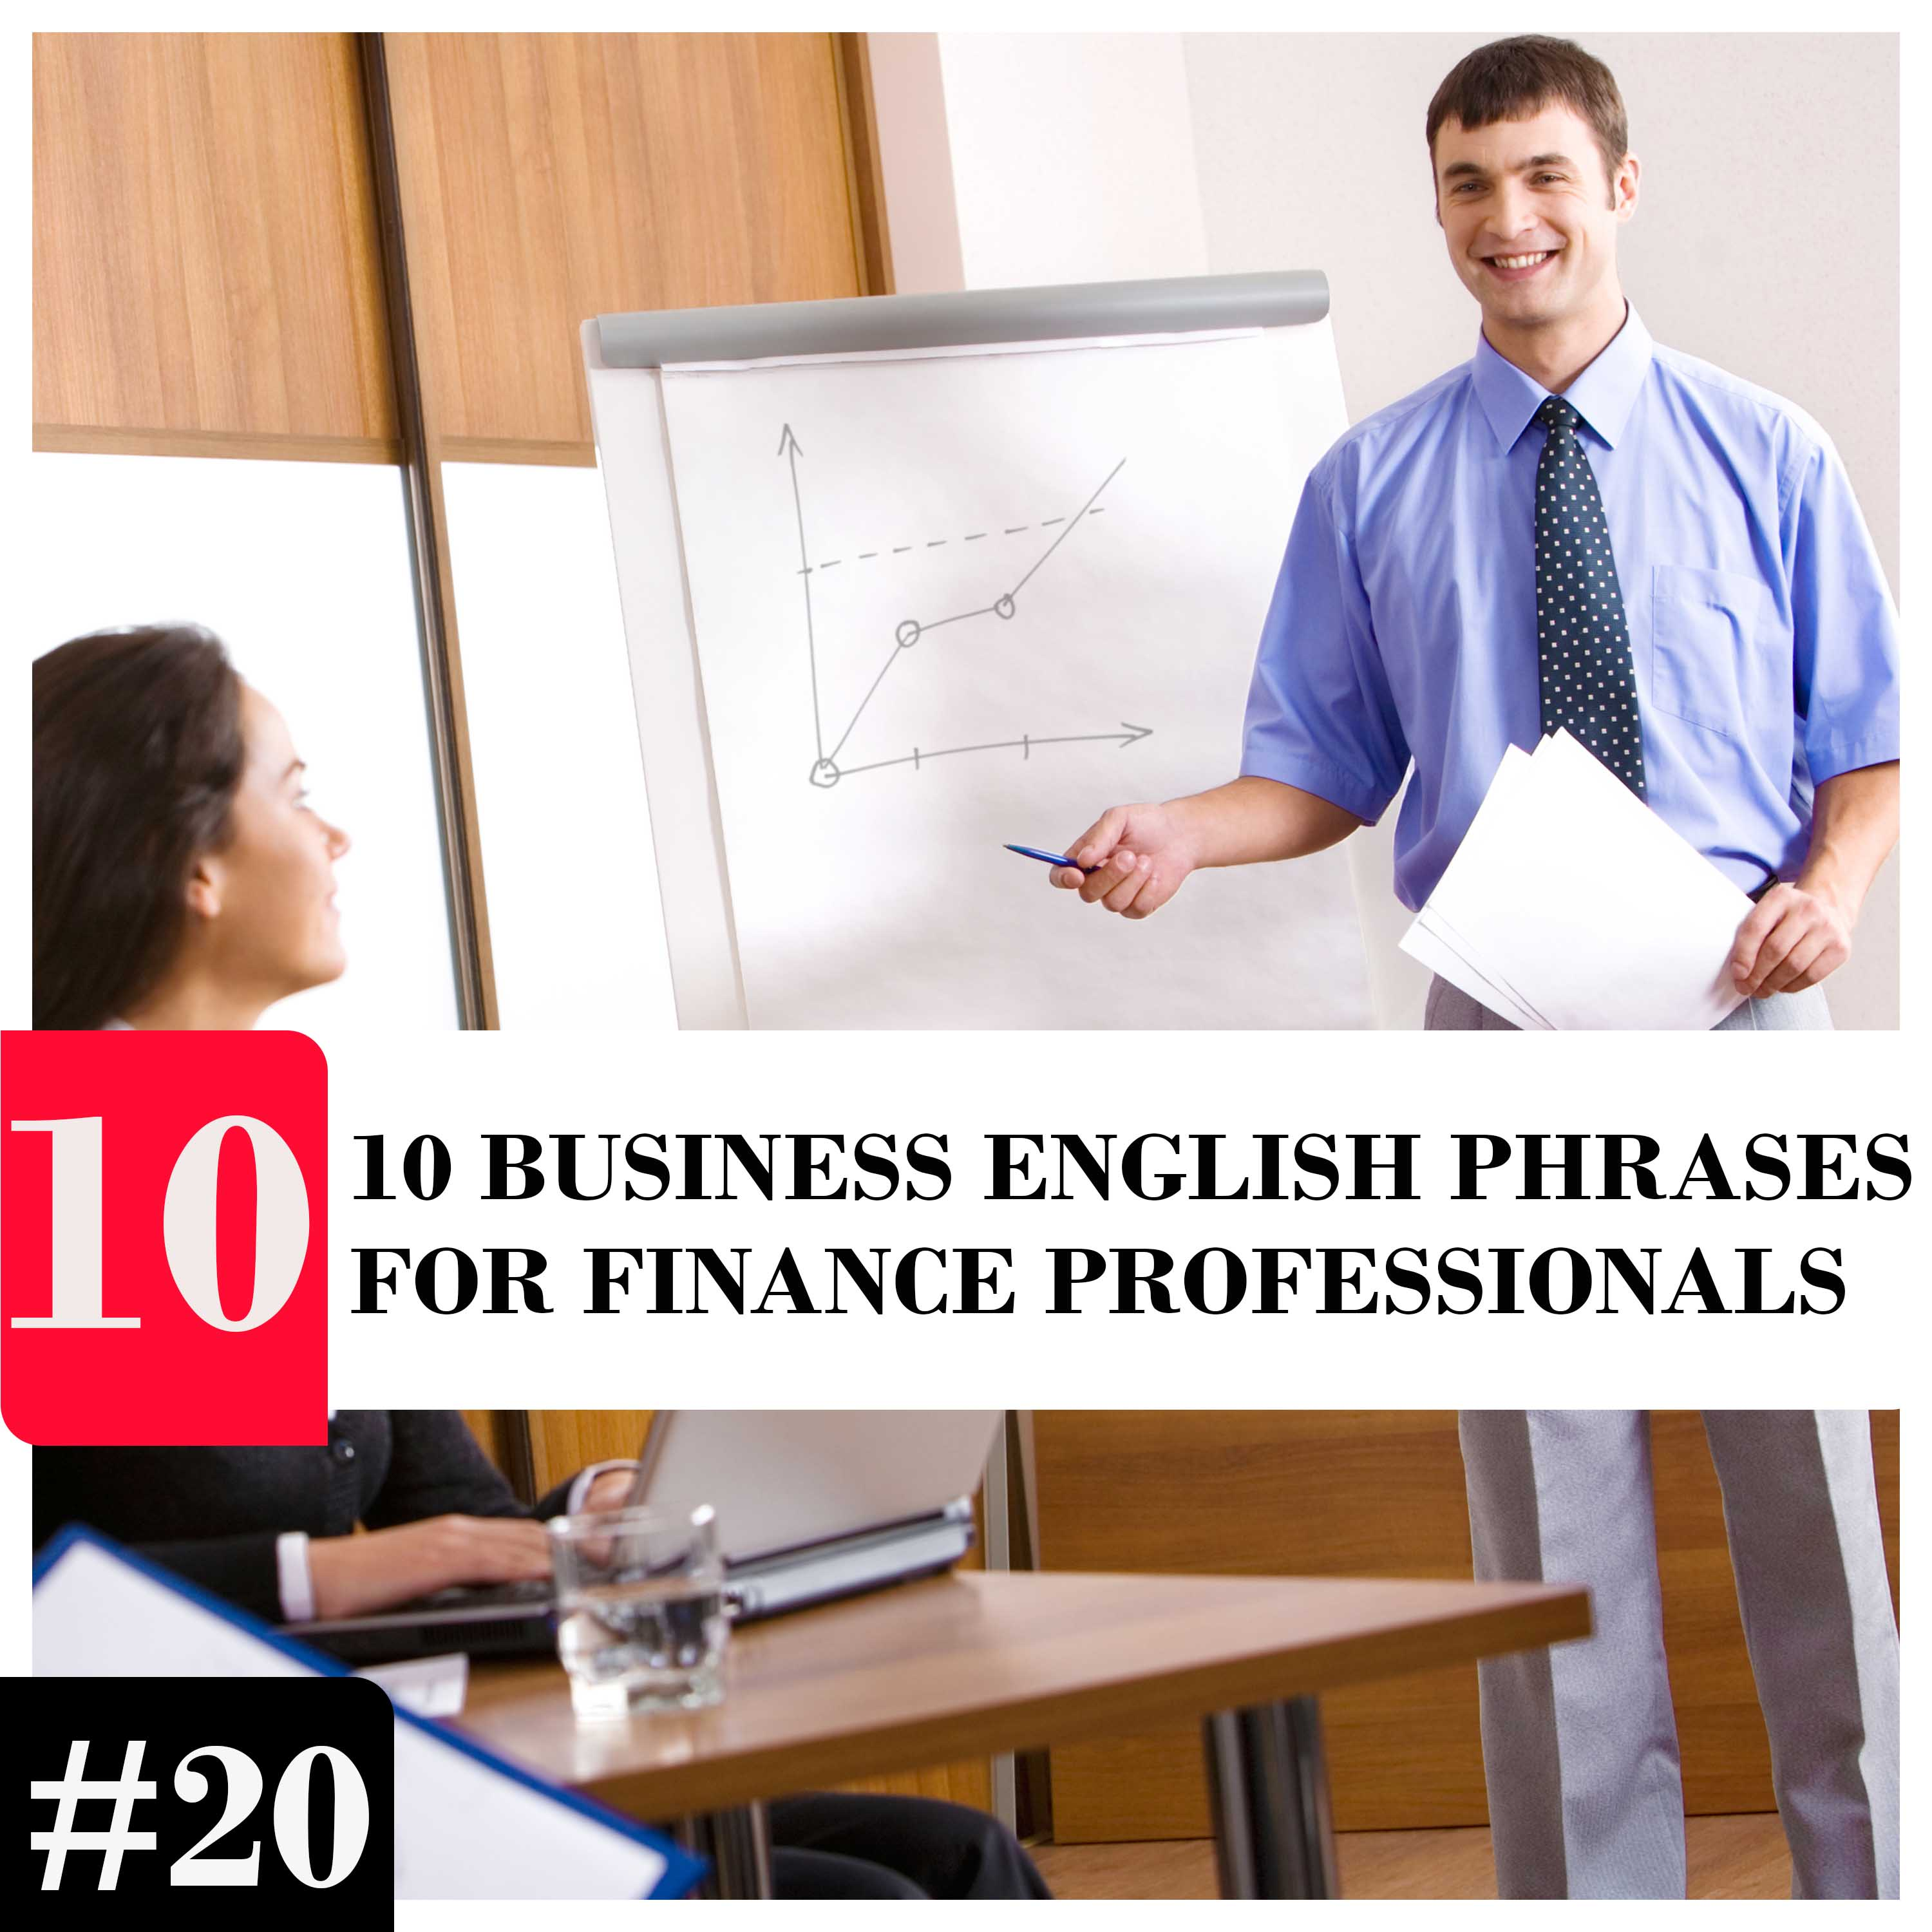 10 Business English Phrases for Finance Professionals